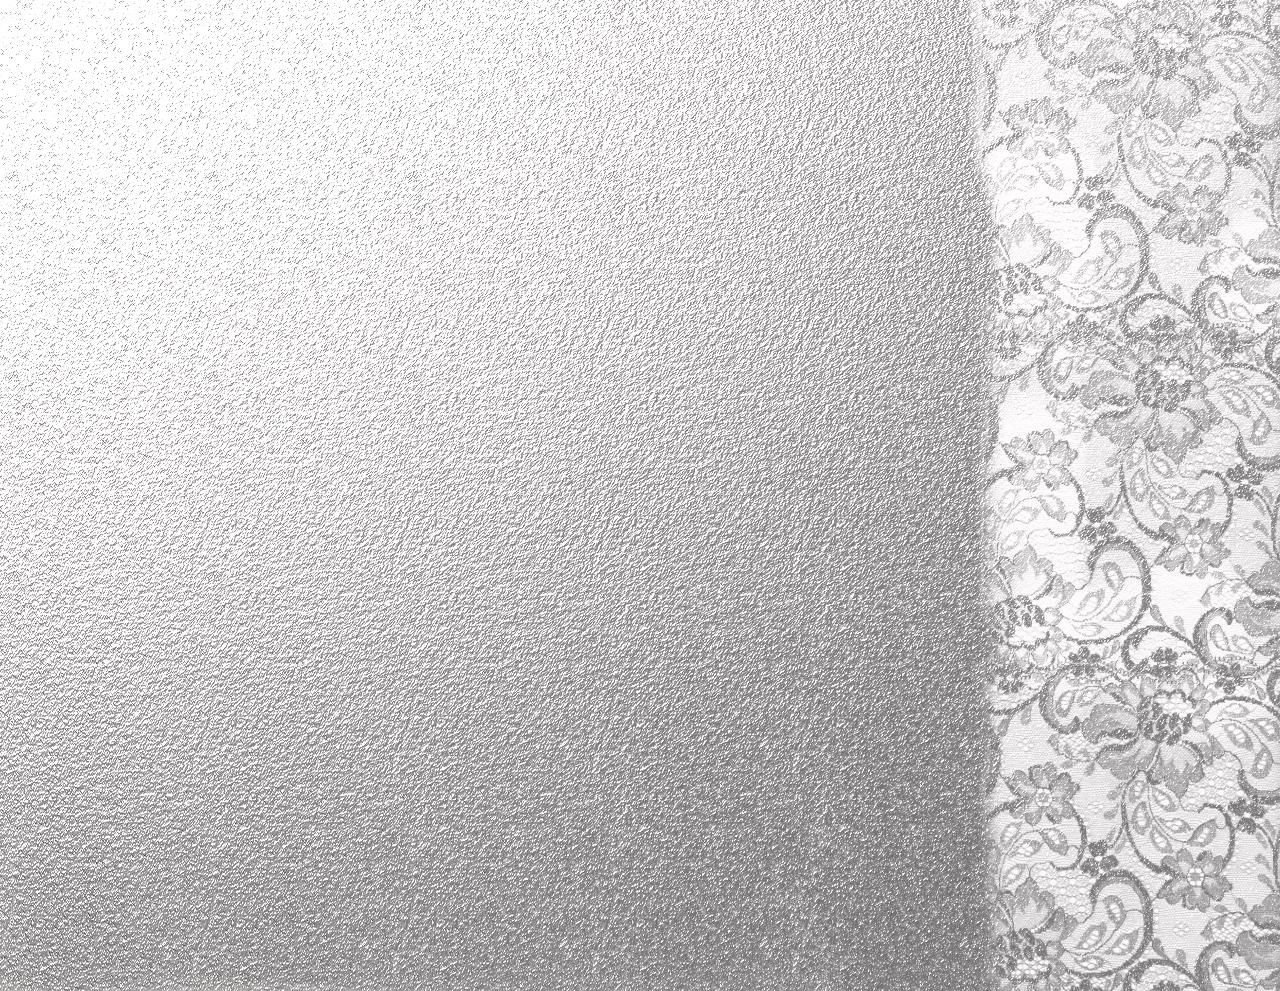 White and Silver Metallic Wallpaper - WallpaperSafari